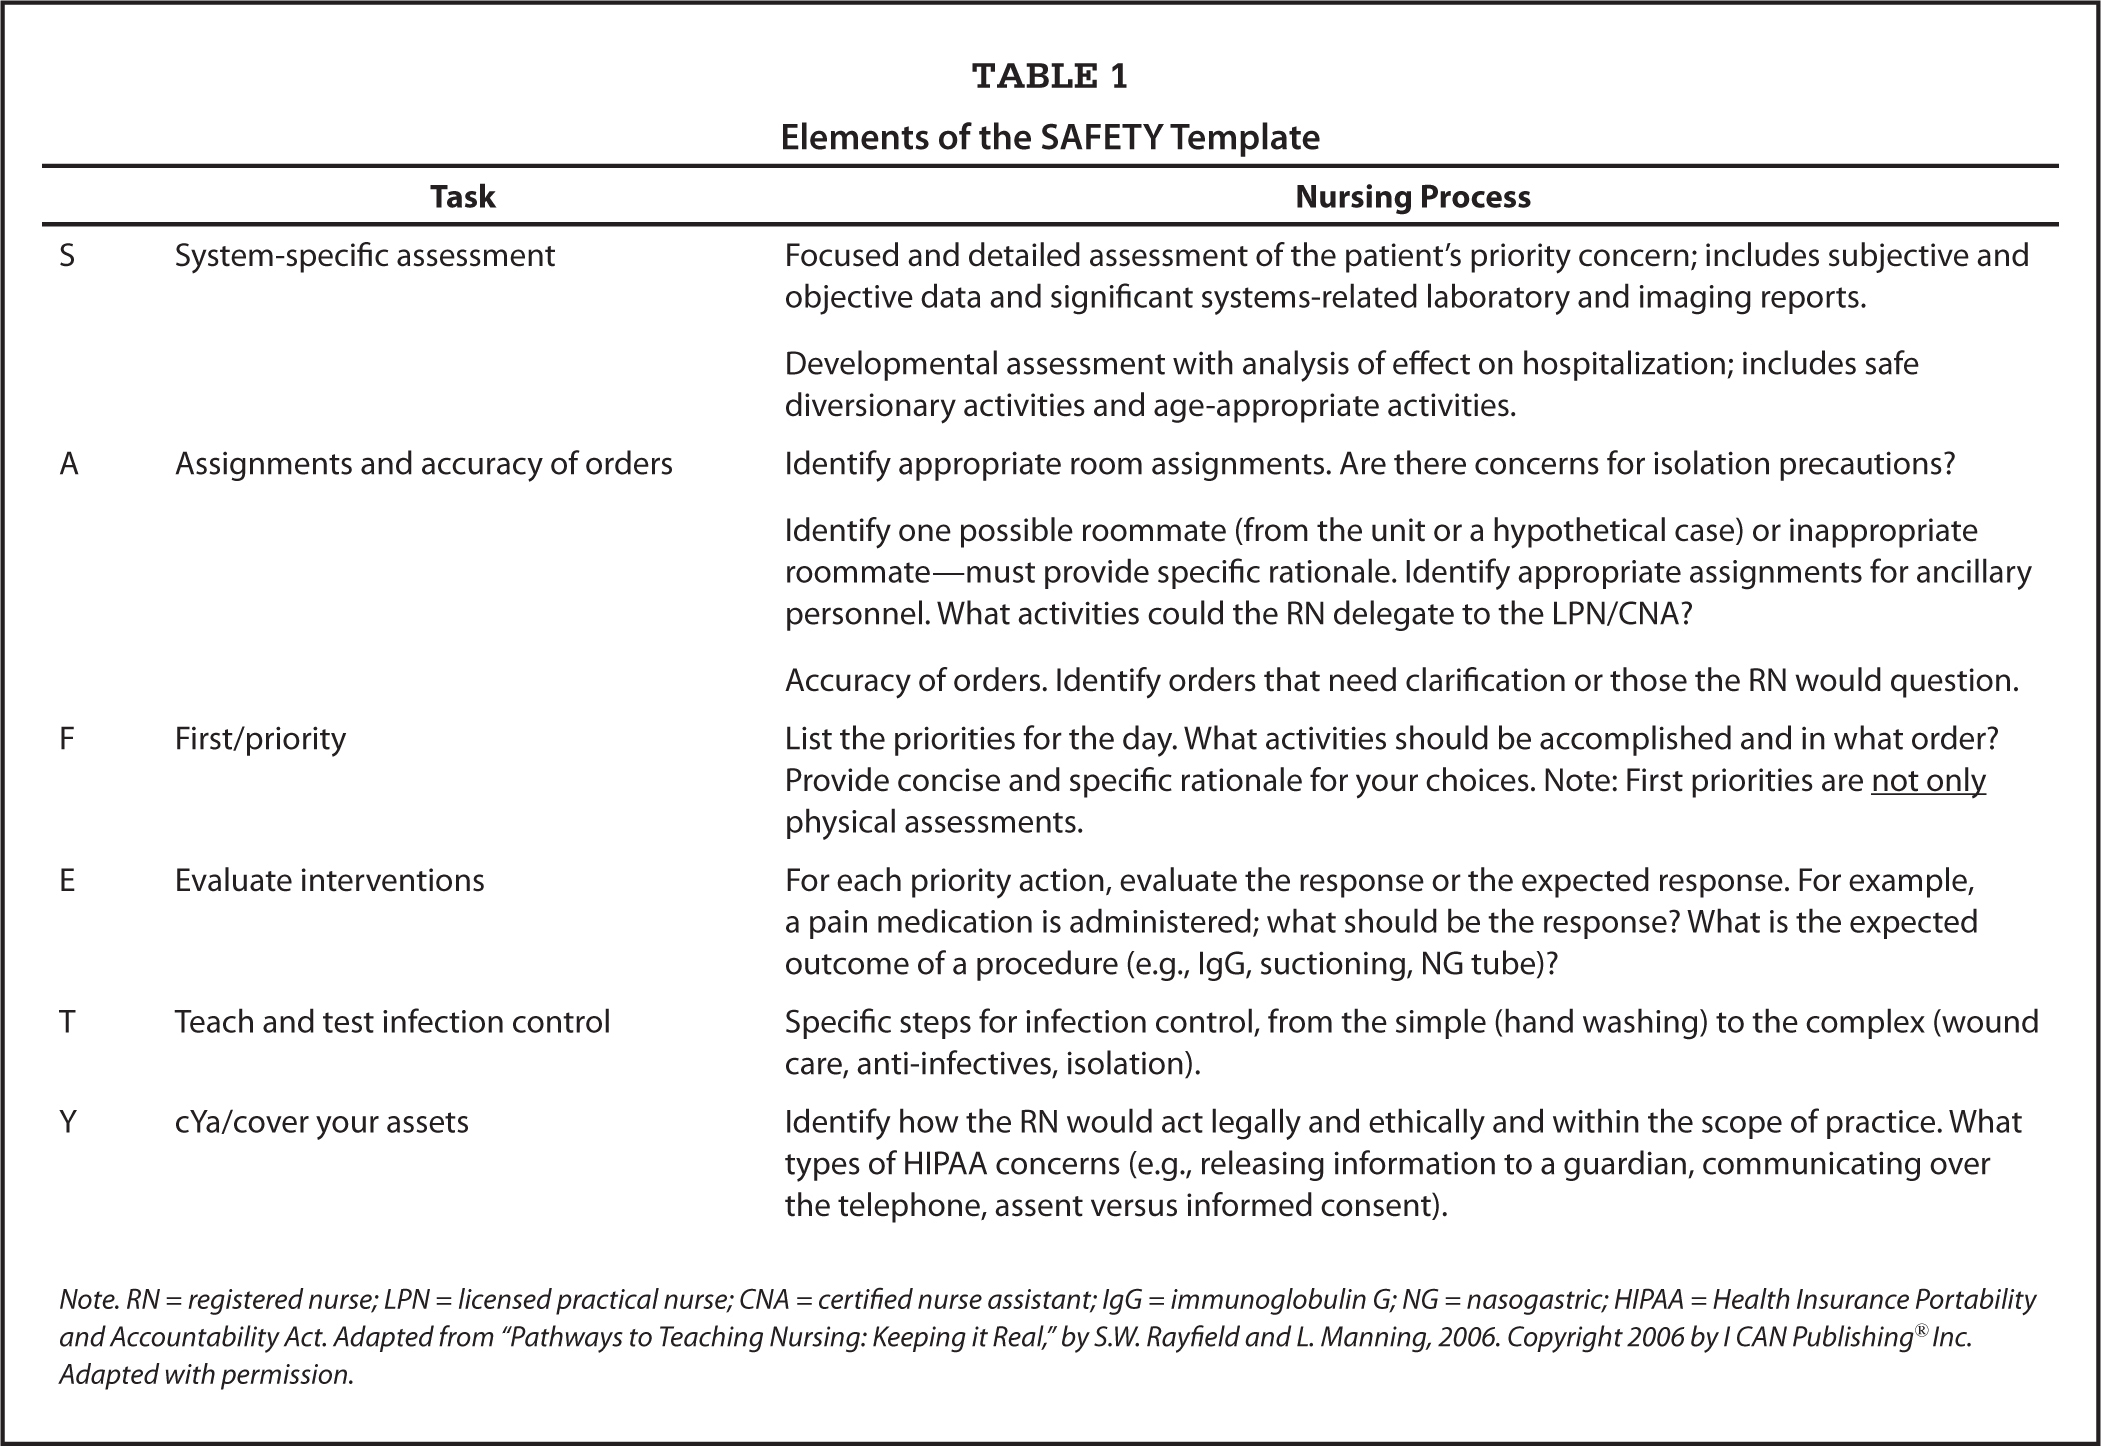 ... Reasoning and Reflection Framework for Undergraduate Nursing Students